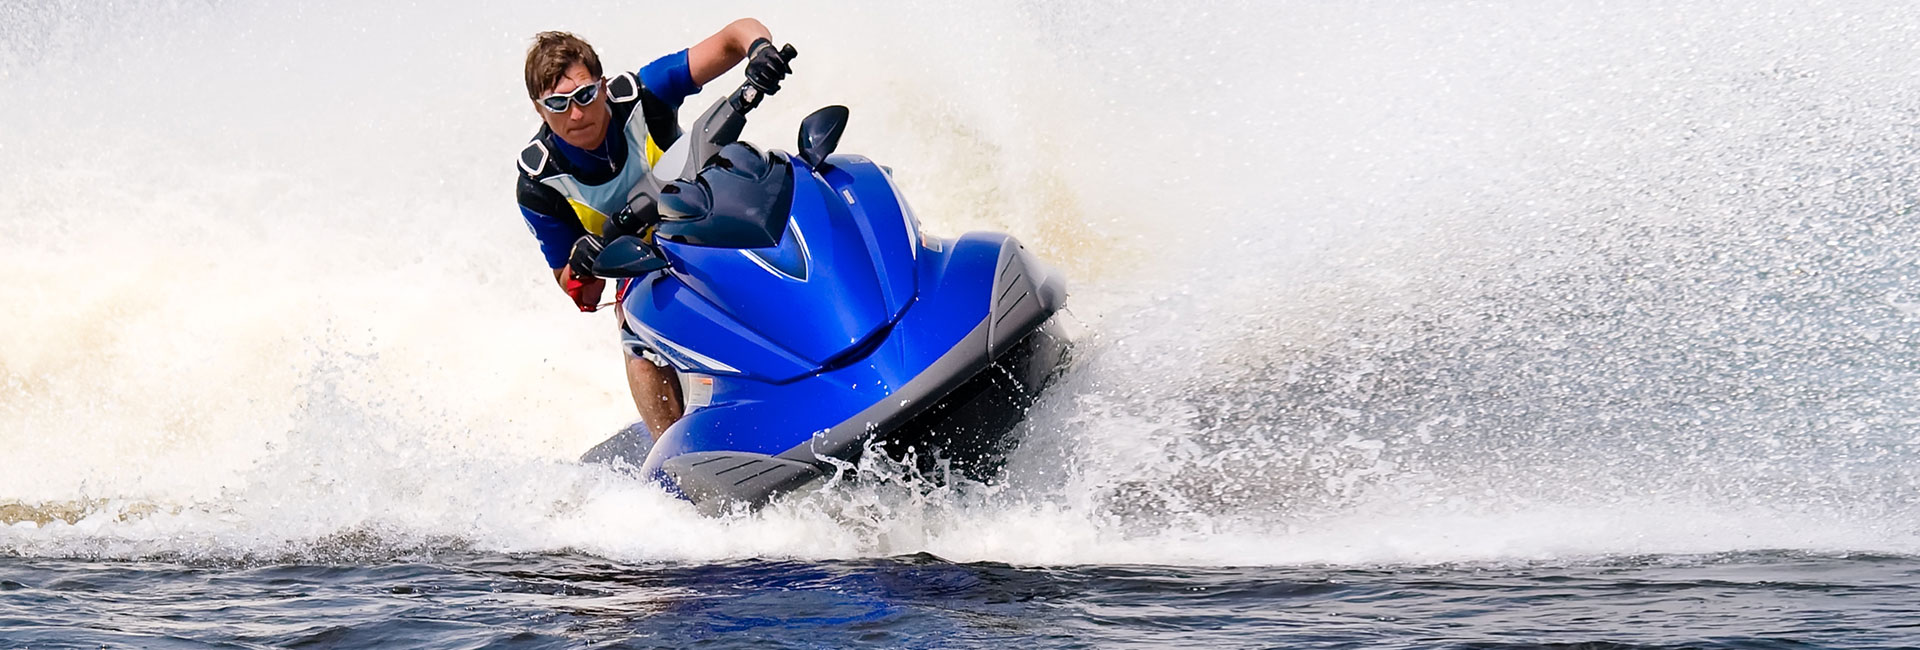 300d34ca4ad1 VARTA® batteries are the smart choice for riders of PWC Personal Watercraft  such as Jetski ...